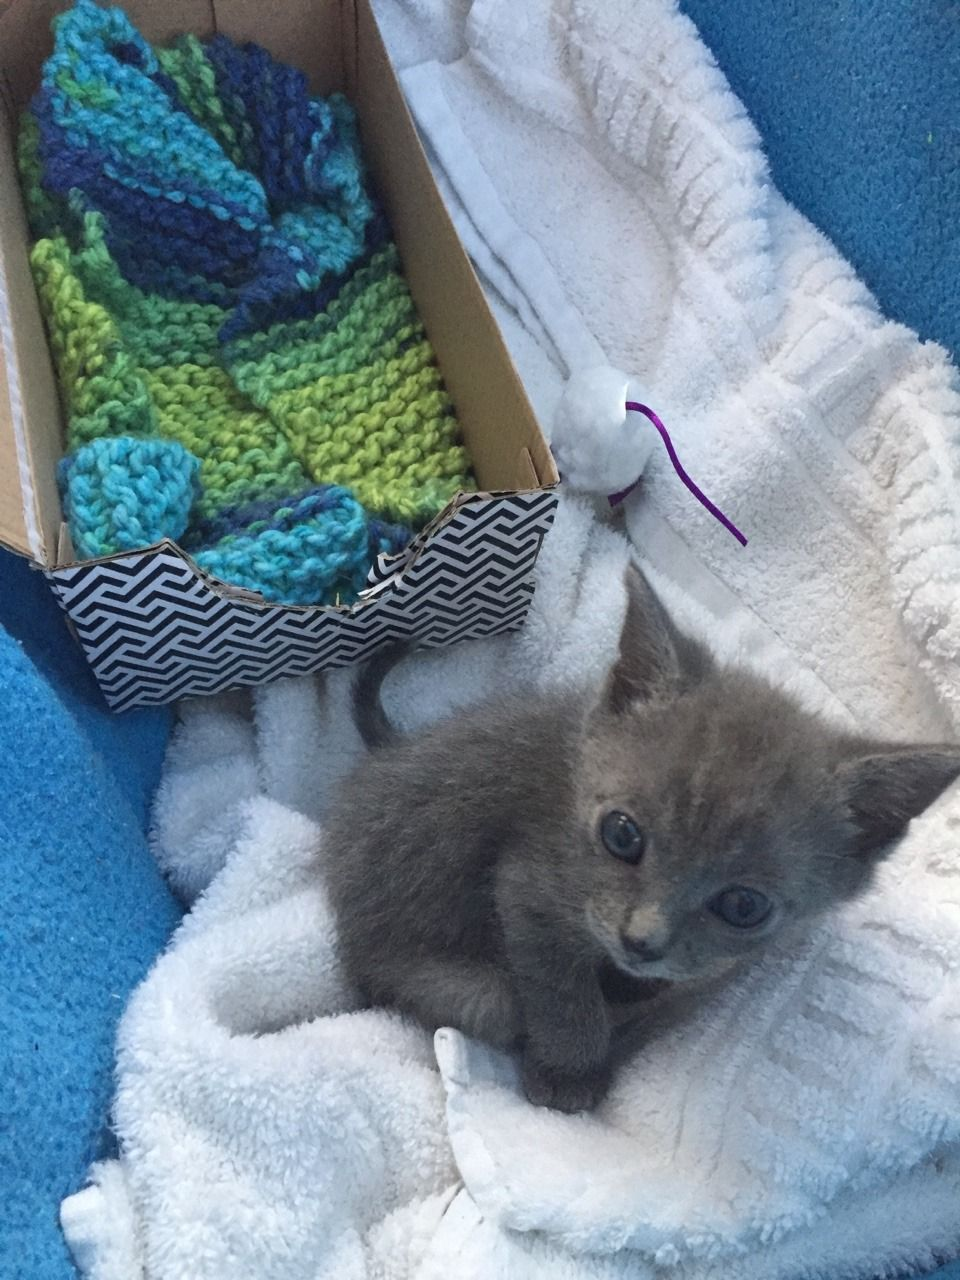 This Guy Is Poco We Got Him Today And He S So Sweet Cute Cats Photos Kittens Cutest Cats